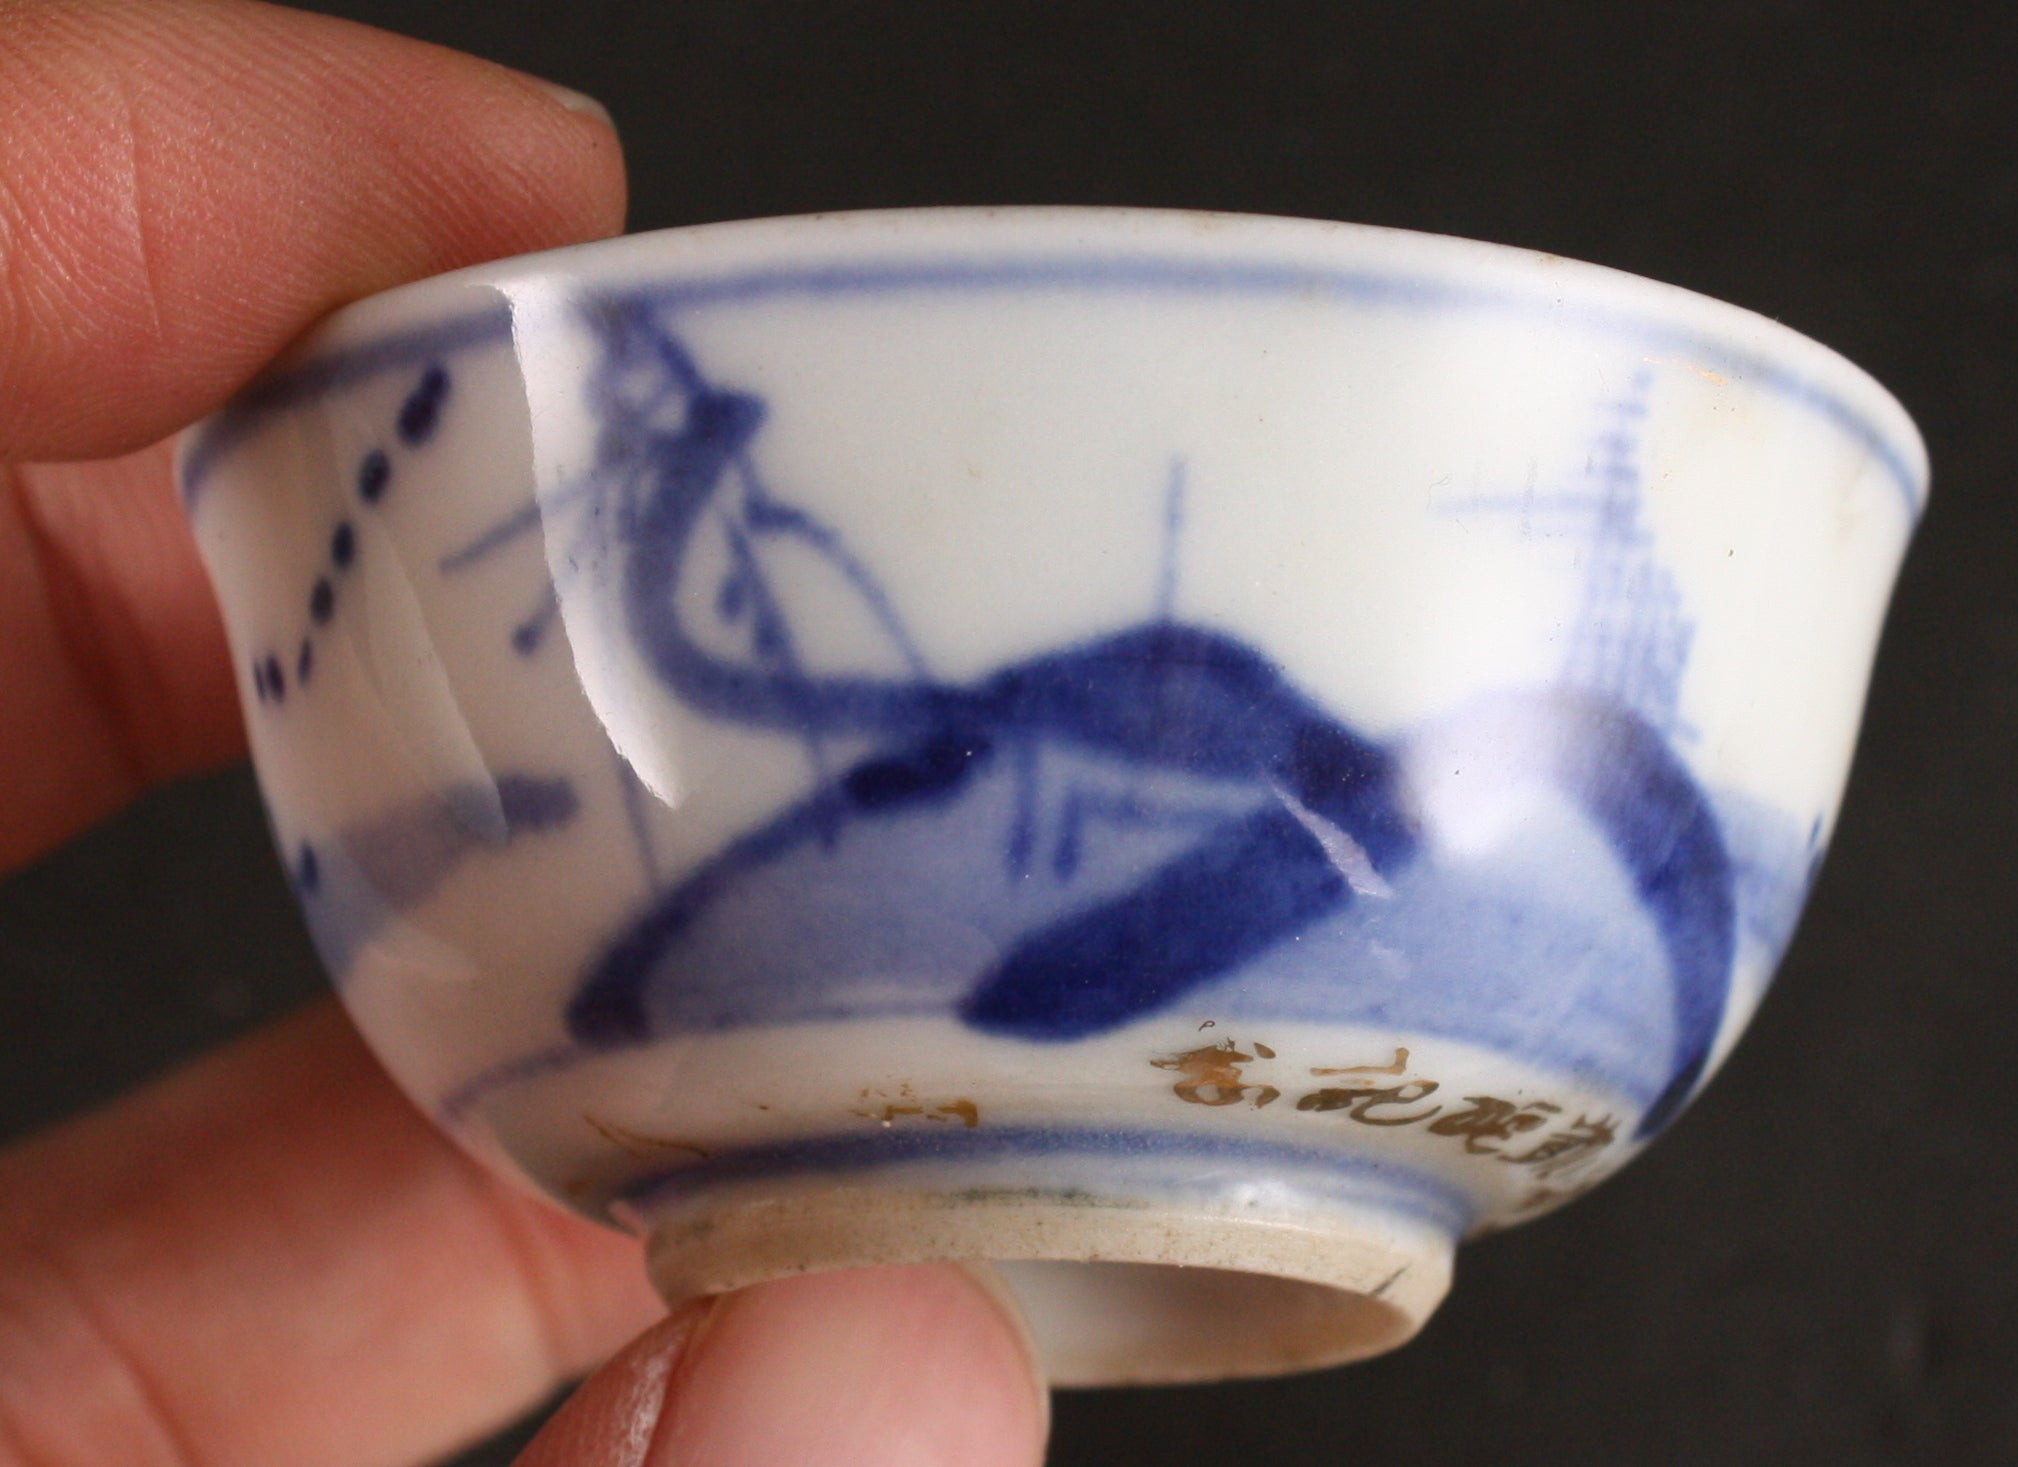 Antique Japanese Military 1931 Shanghai Incident Victory Kutani Army Sake Cup